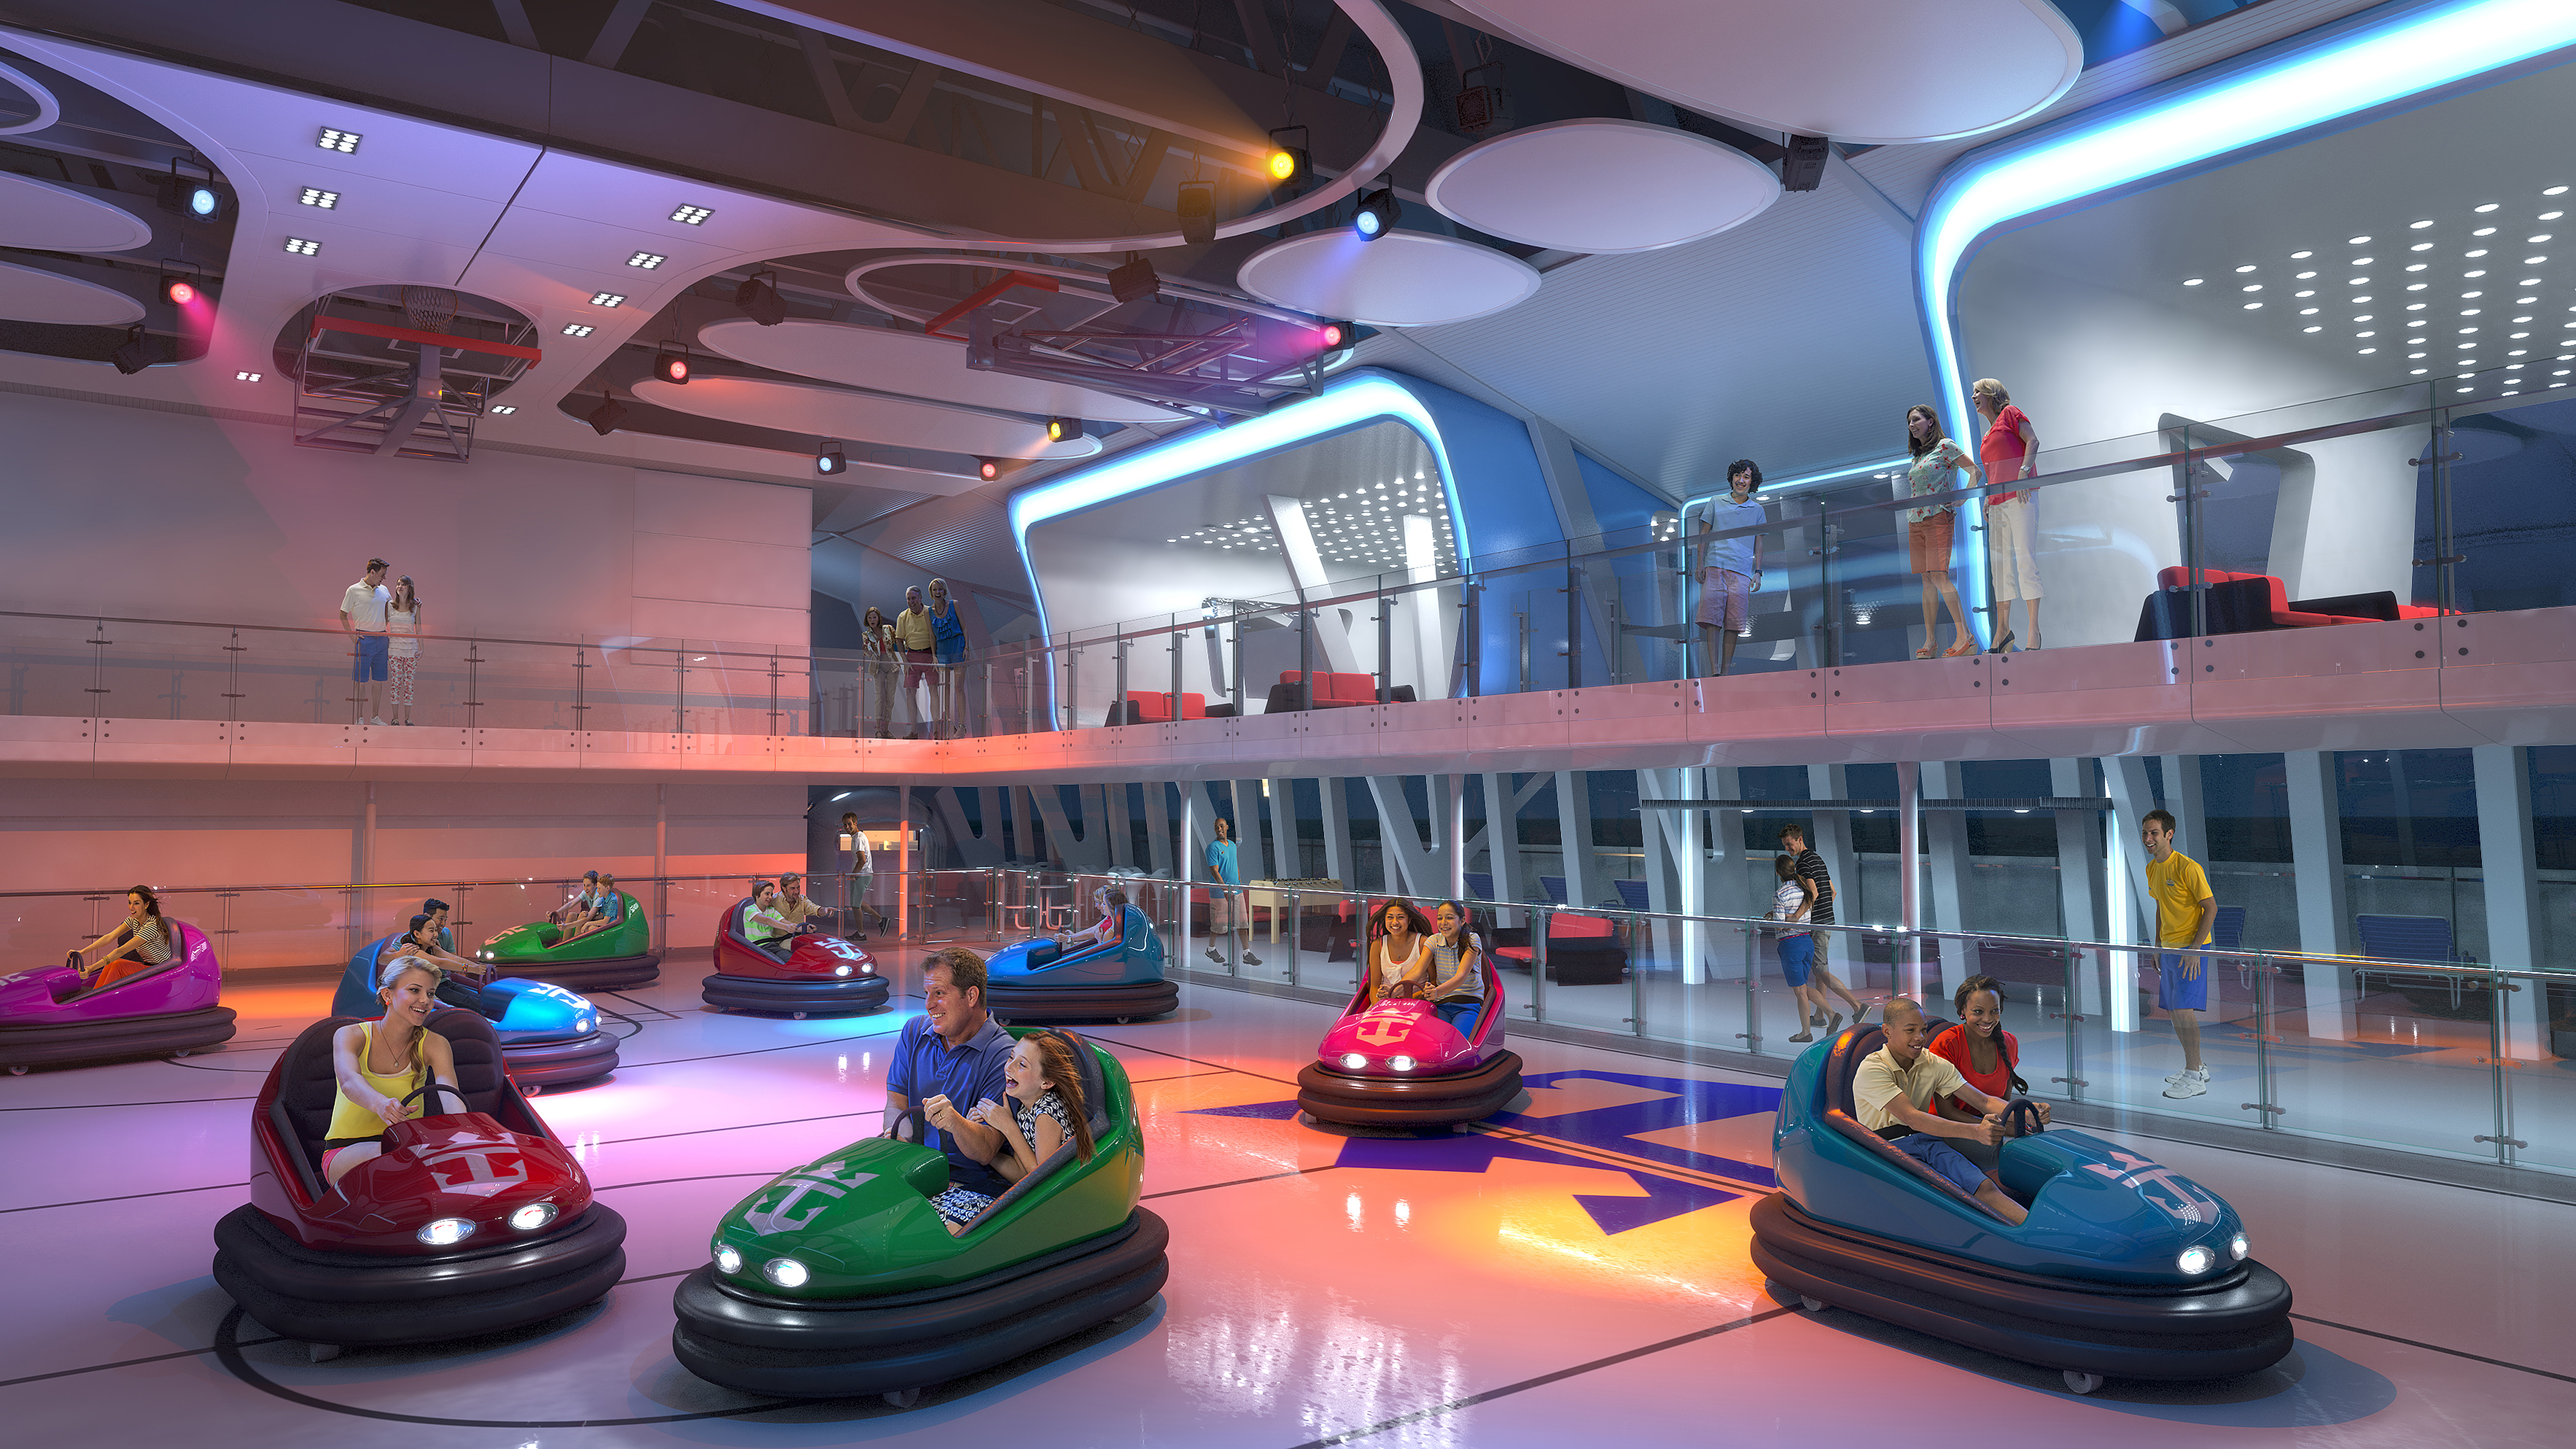 Royal Caribbean International Anthem of the Seas Interior SeaPlex Bumper Cars.jpg